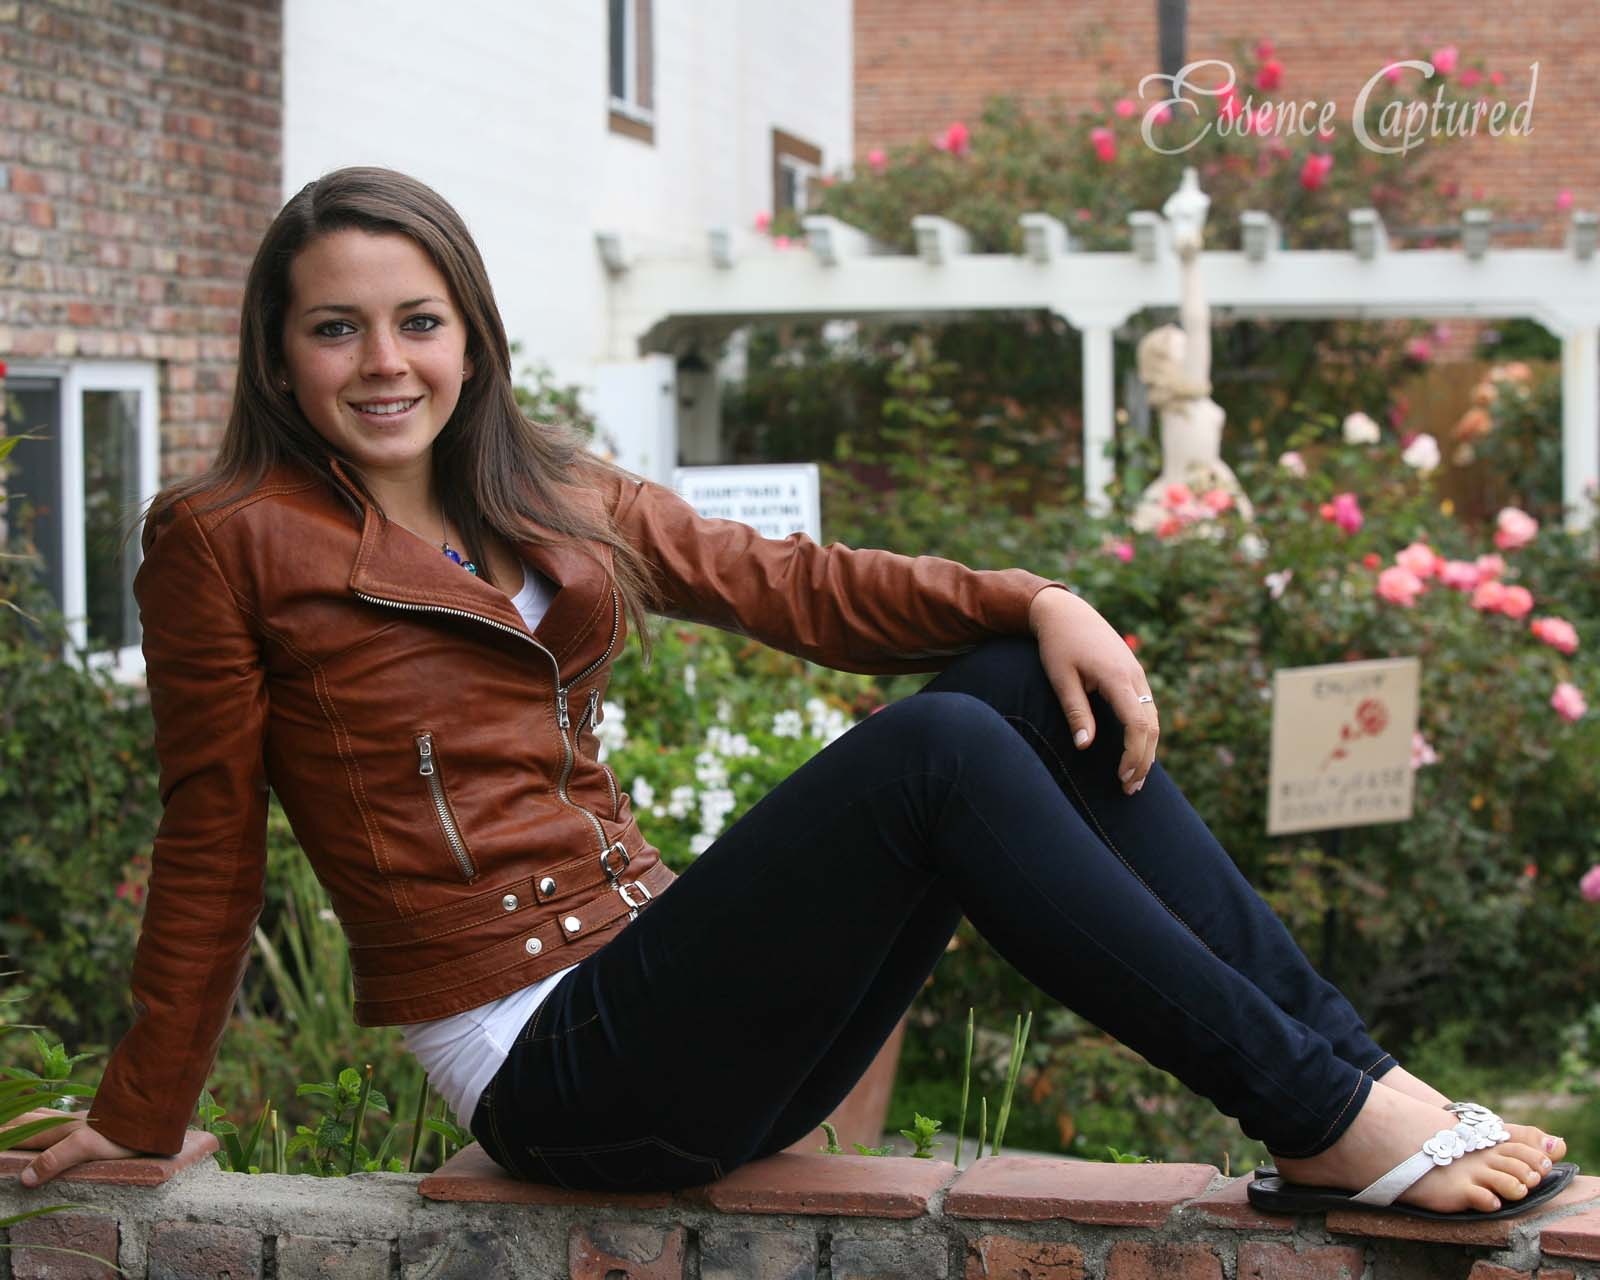 female high school senior portrait sitting on brick wall garden backdrop brown leather jacket long brown hair blue jeans casual